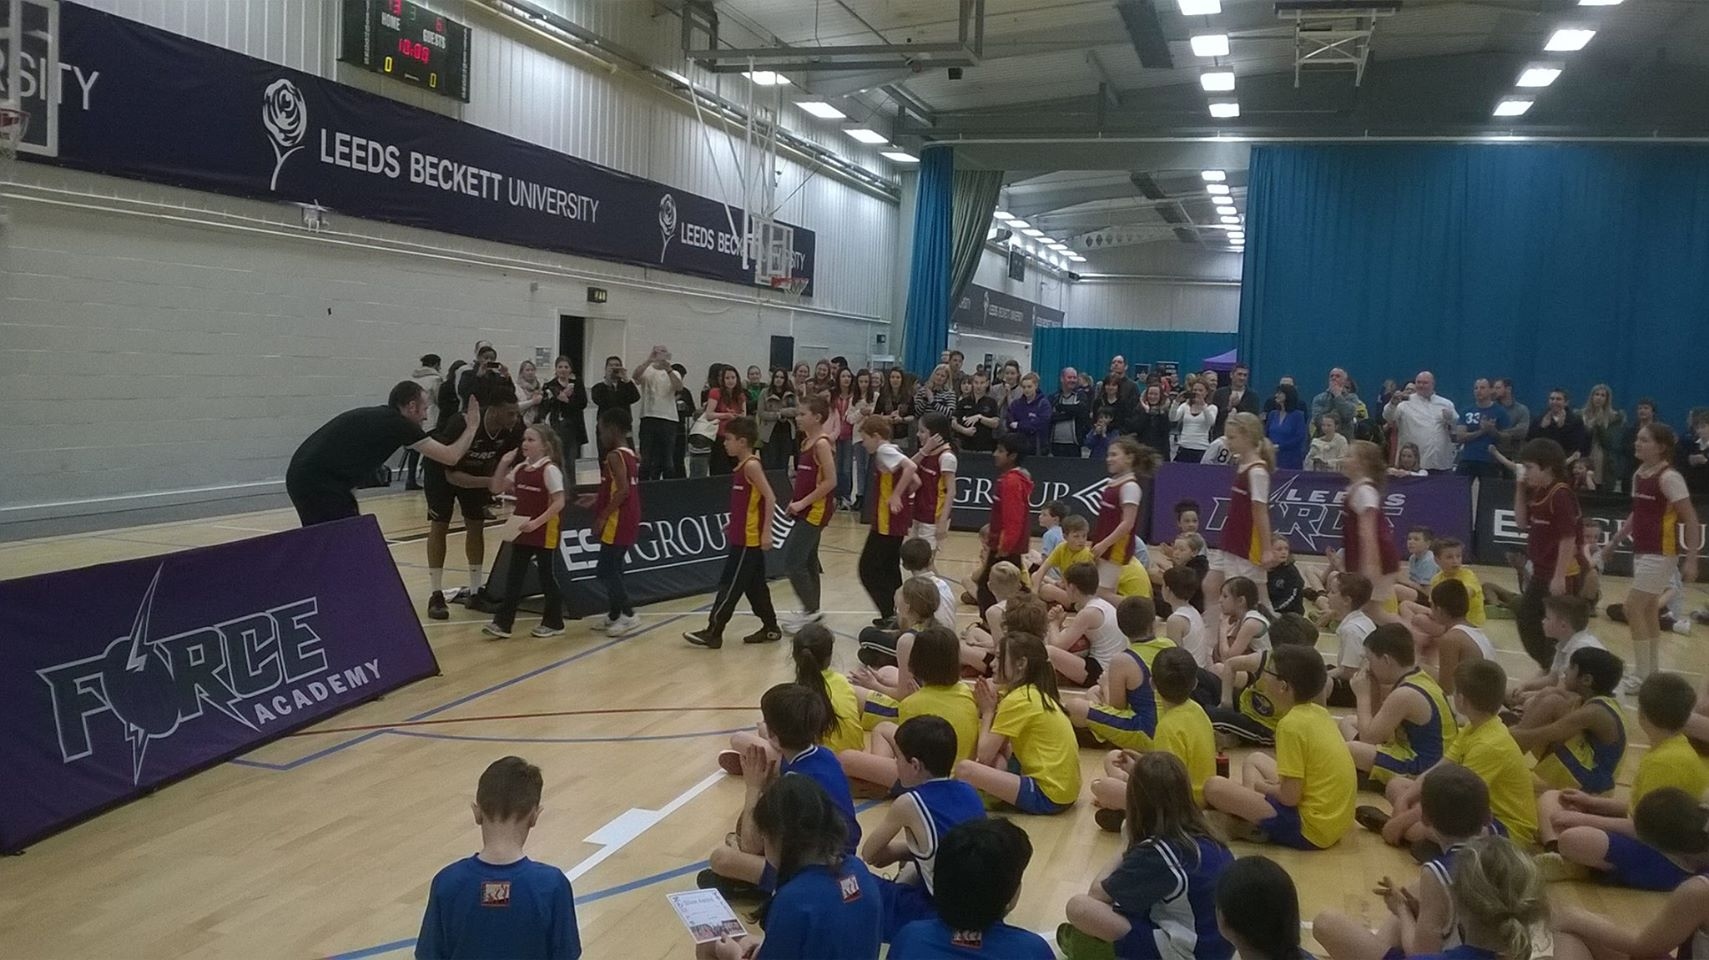 Leeds North West Basketball Y4 5 Finals 2014-15 2nd place Adel St John's